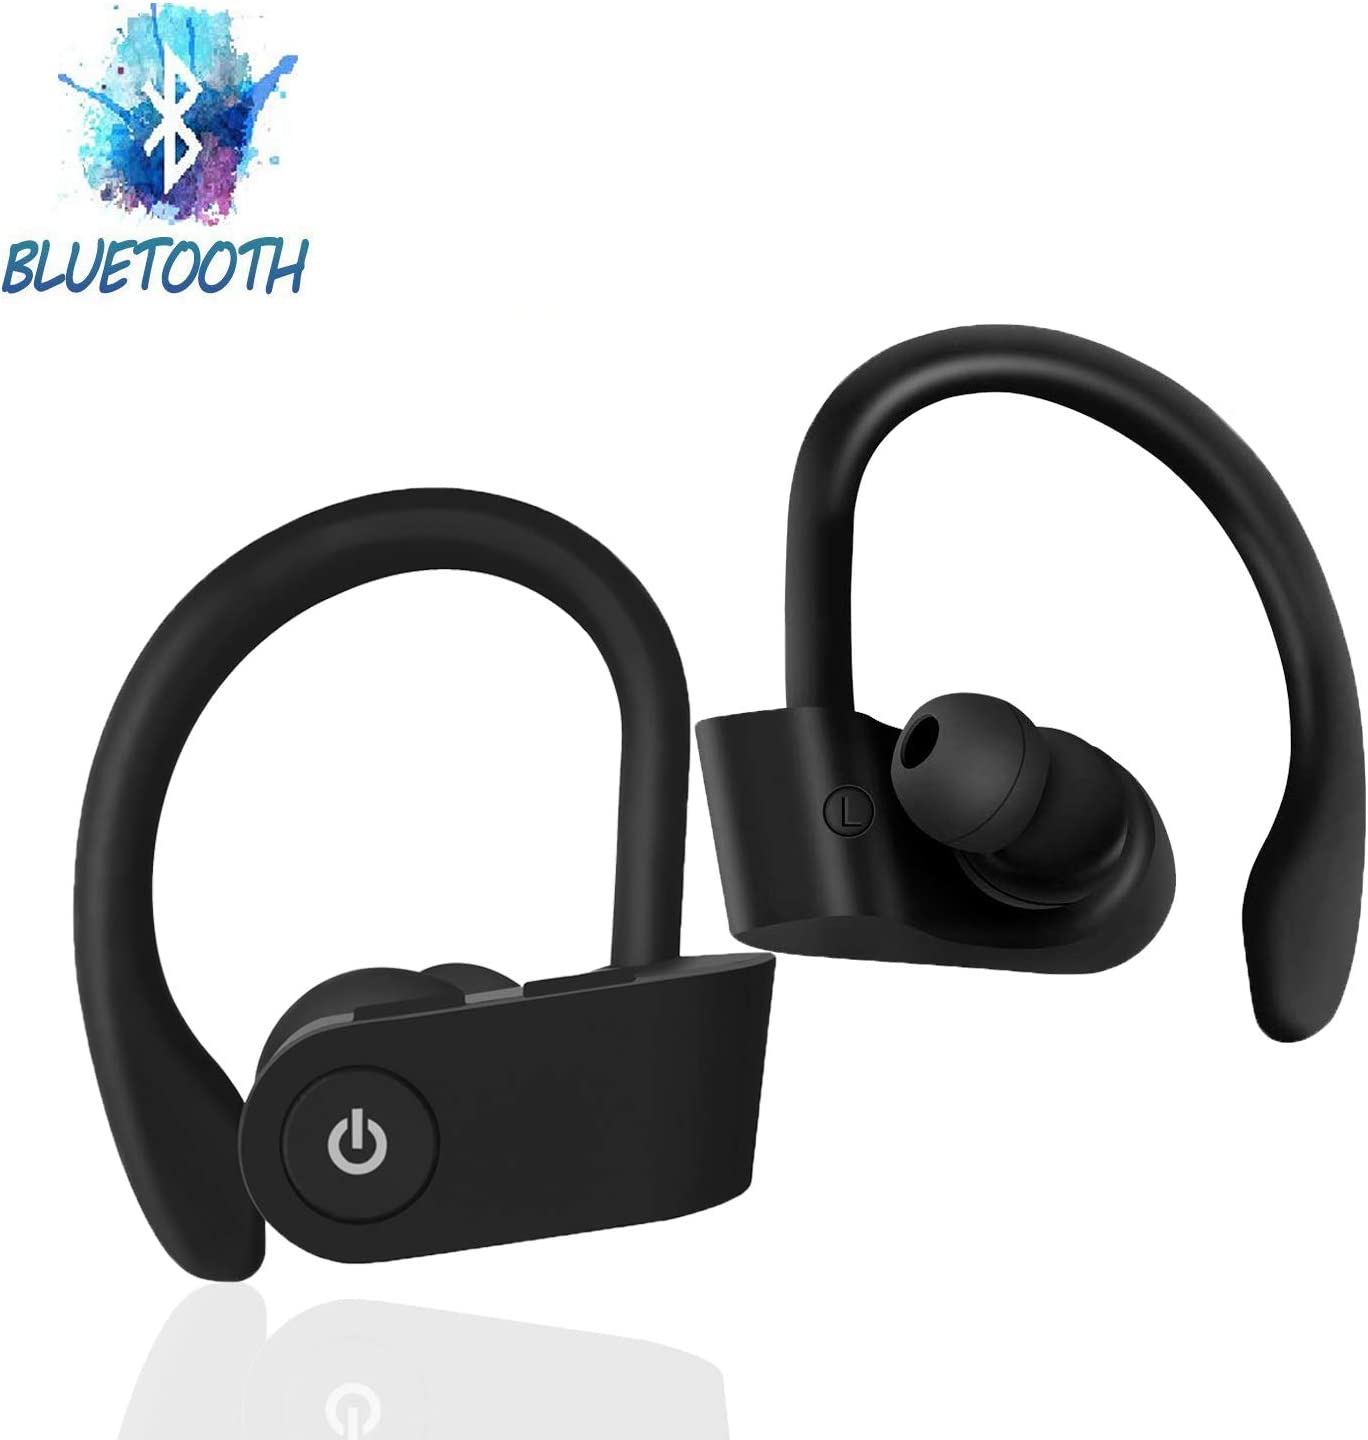 Wireless Headset Bluetooth Headset,On-Ear Headphones IPX5 Waterproof Headphones Play for a Long time, with Microphone and Stereo HD Sound Quality,for Android/iPhone